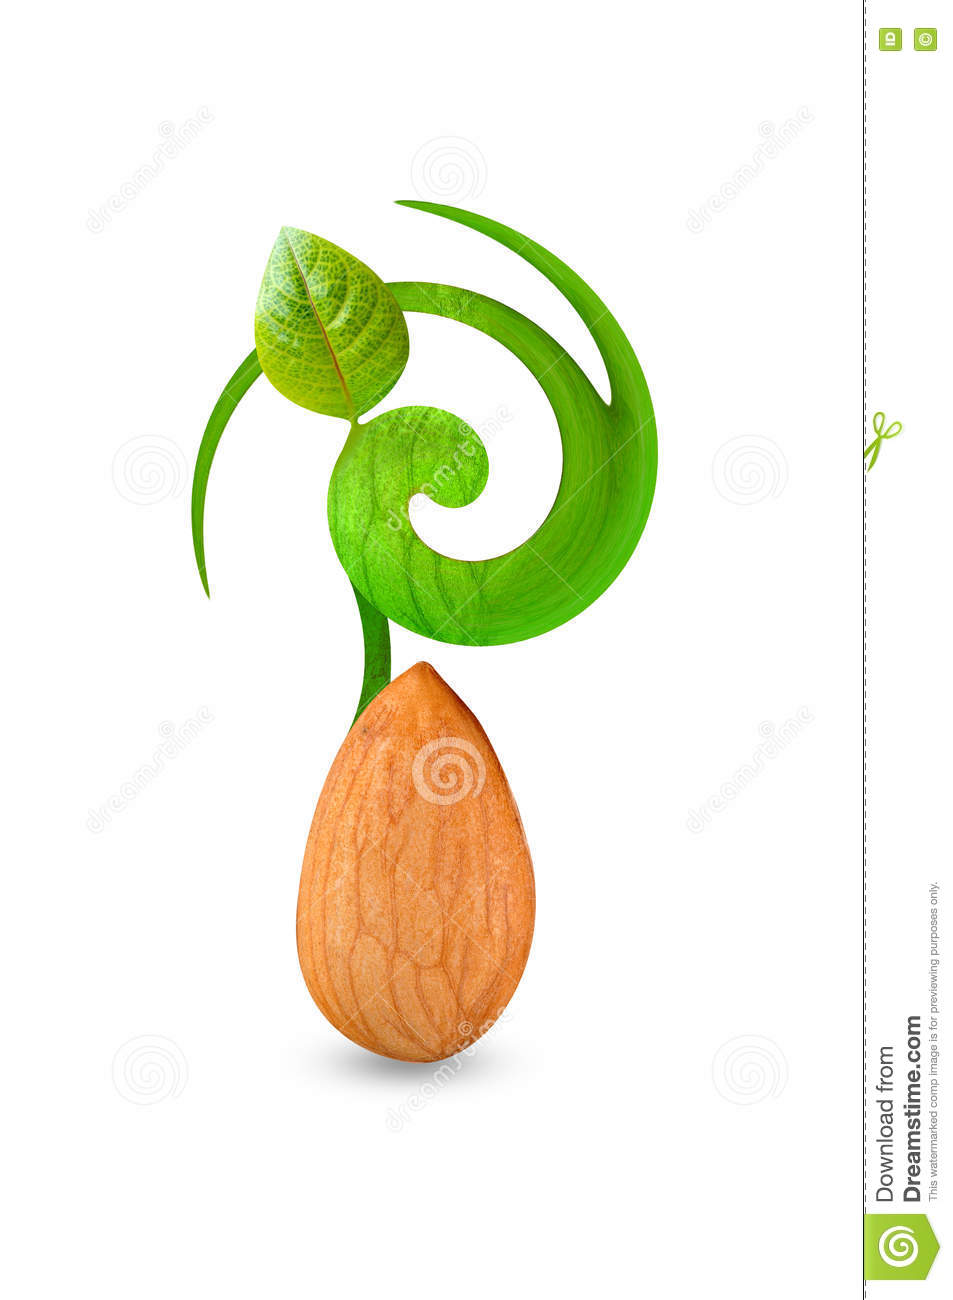 Growth Of Single Almond Leaf Stock Photo.